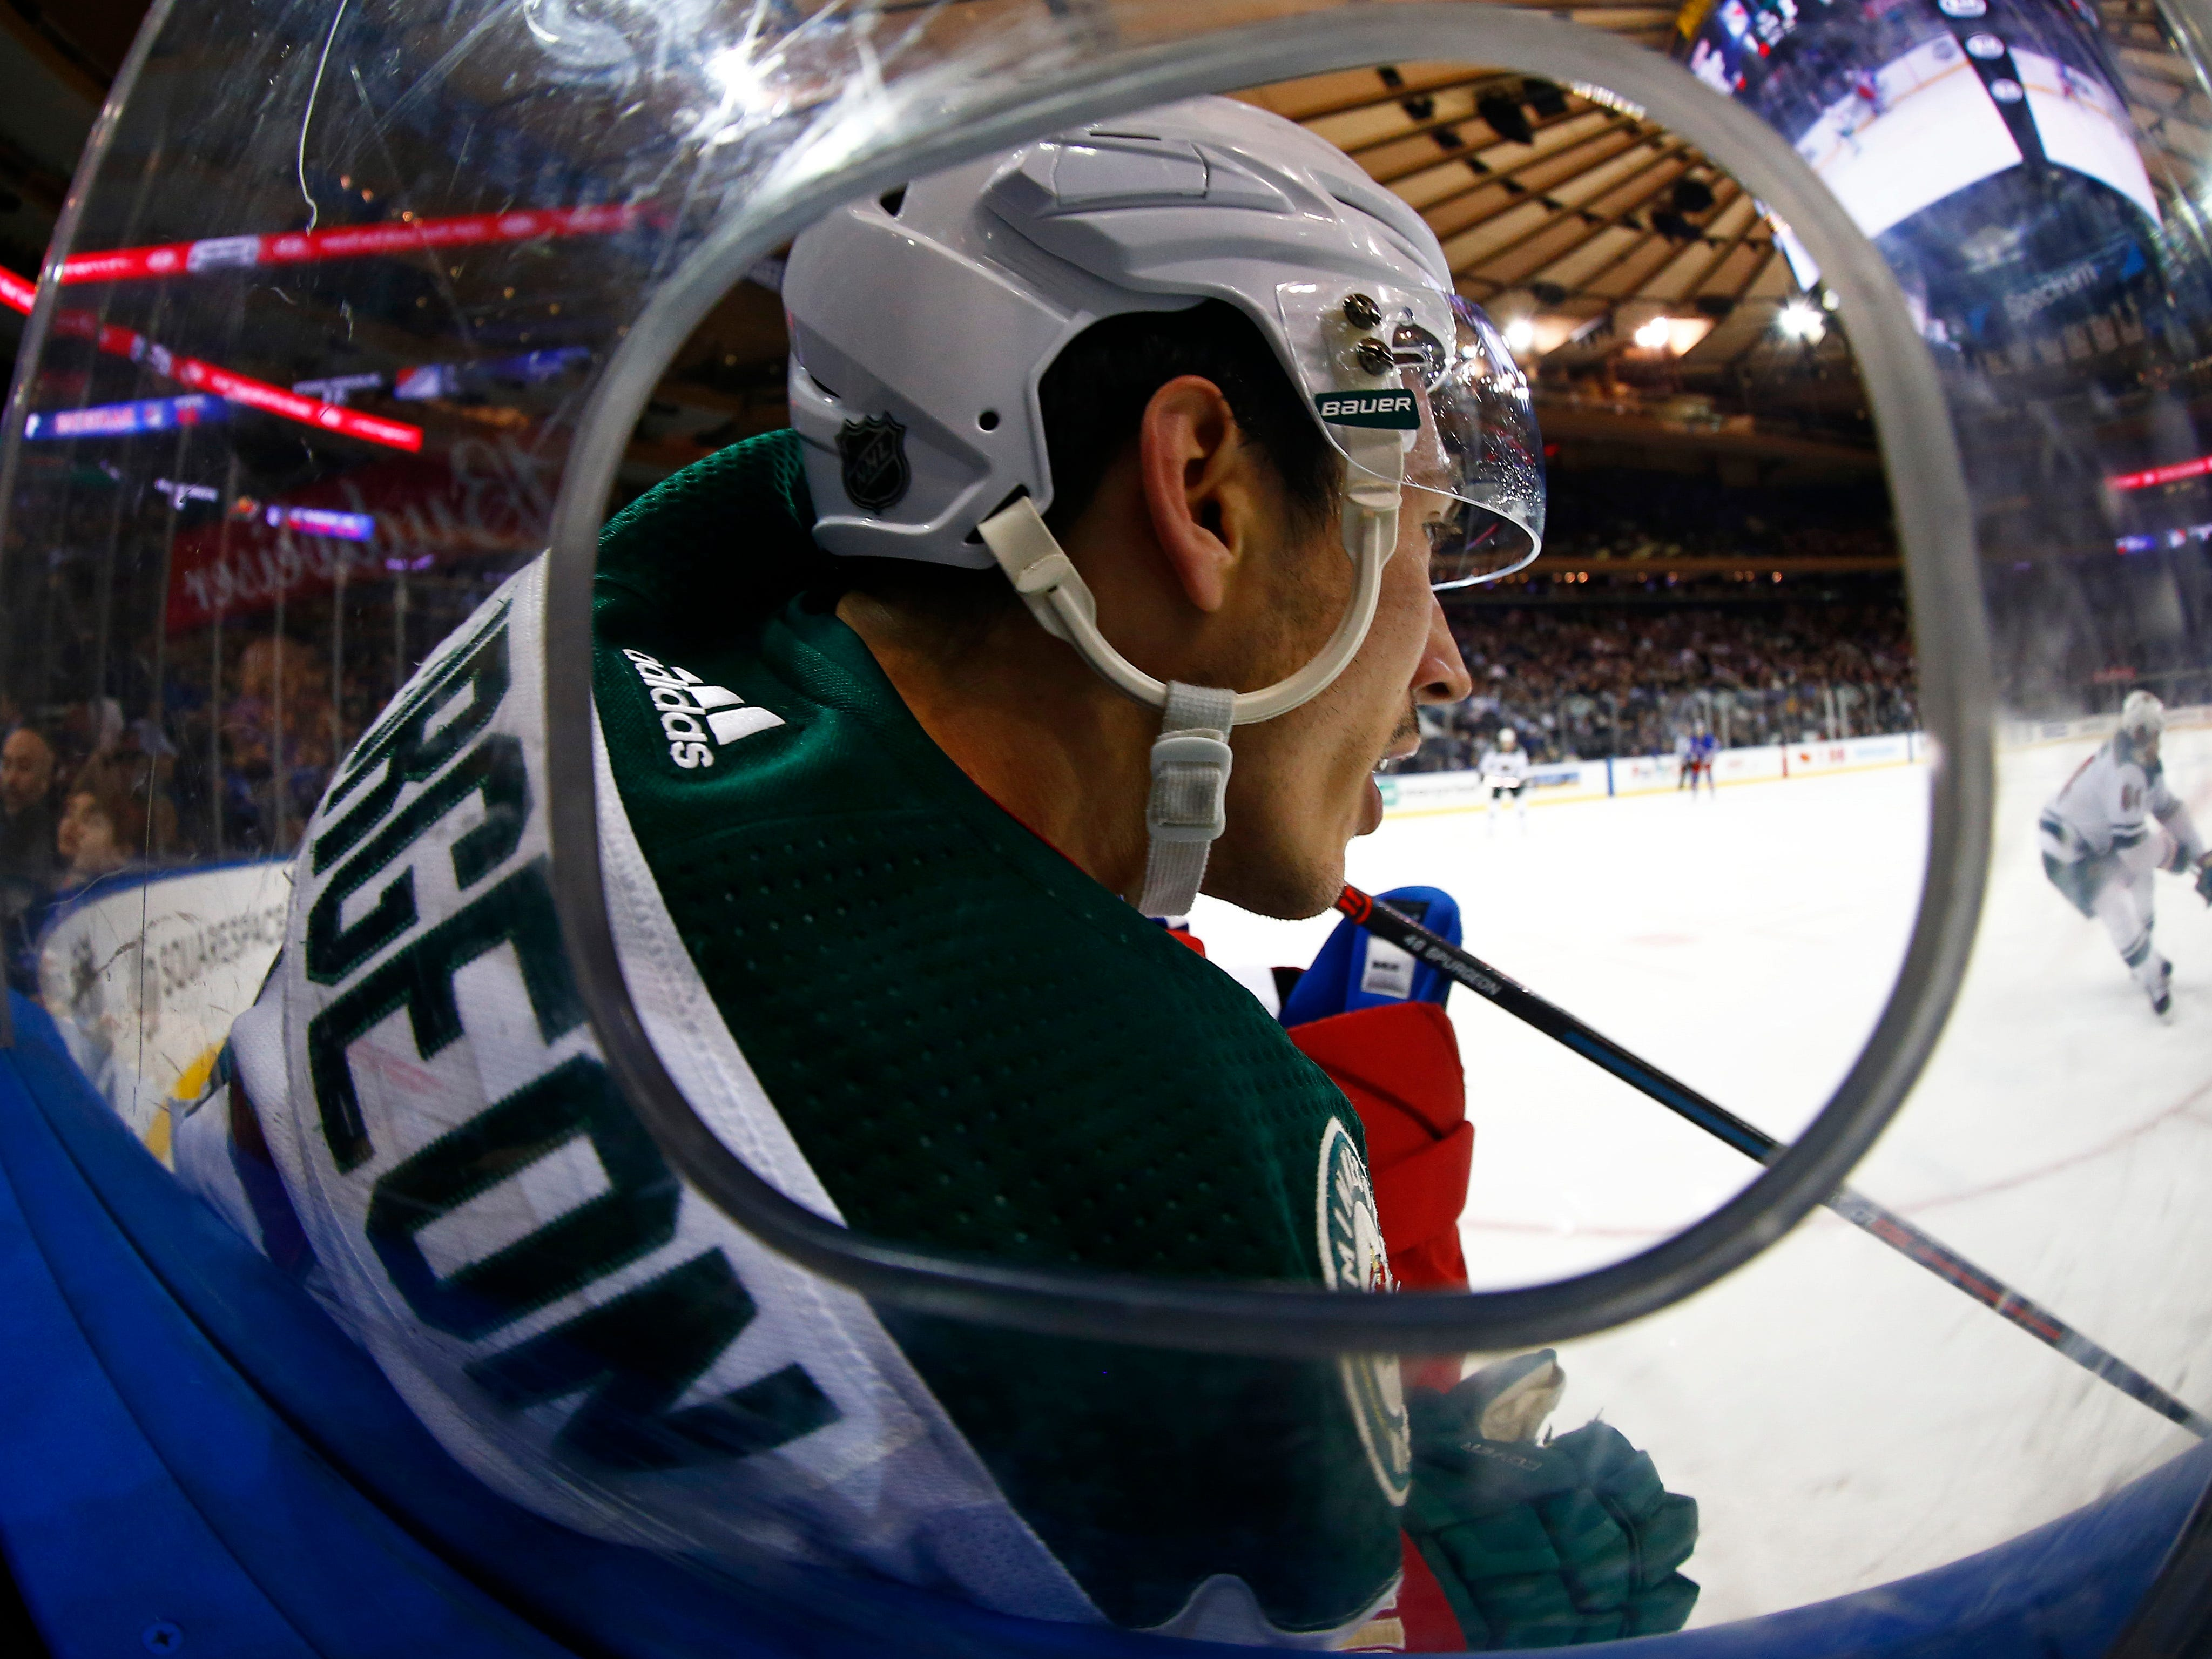 Feb. 21: Minnesota Wild defenseman Jared Spurgeon is checked against the boards in the game vs. the New York Rangers at Madison Square Garden. The Wild won the game, 4-1.